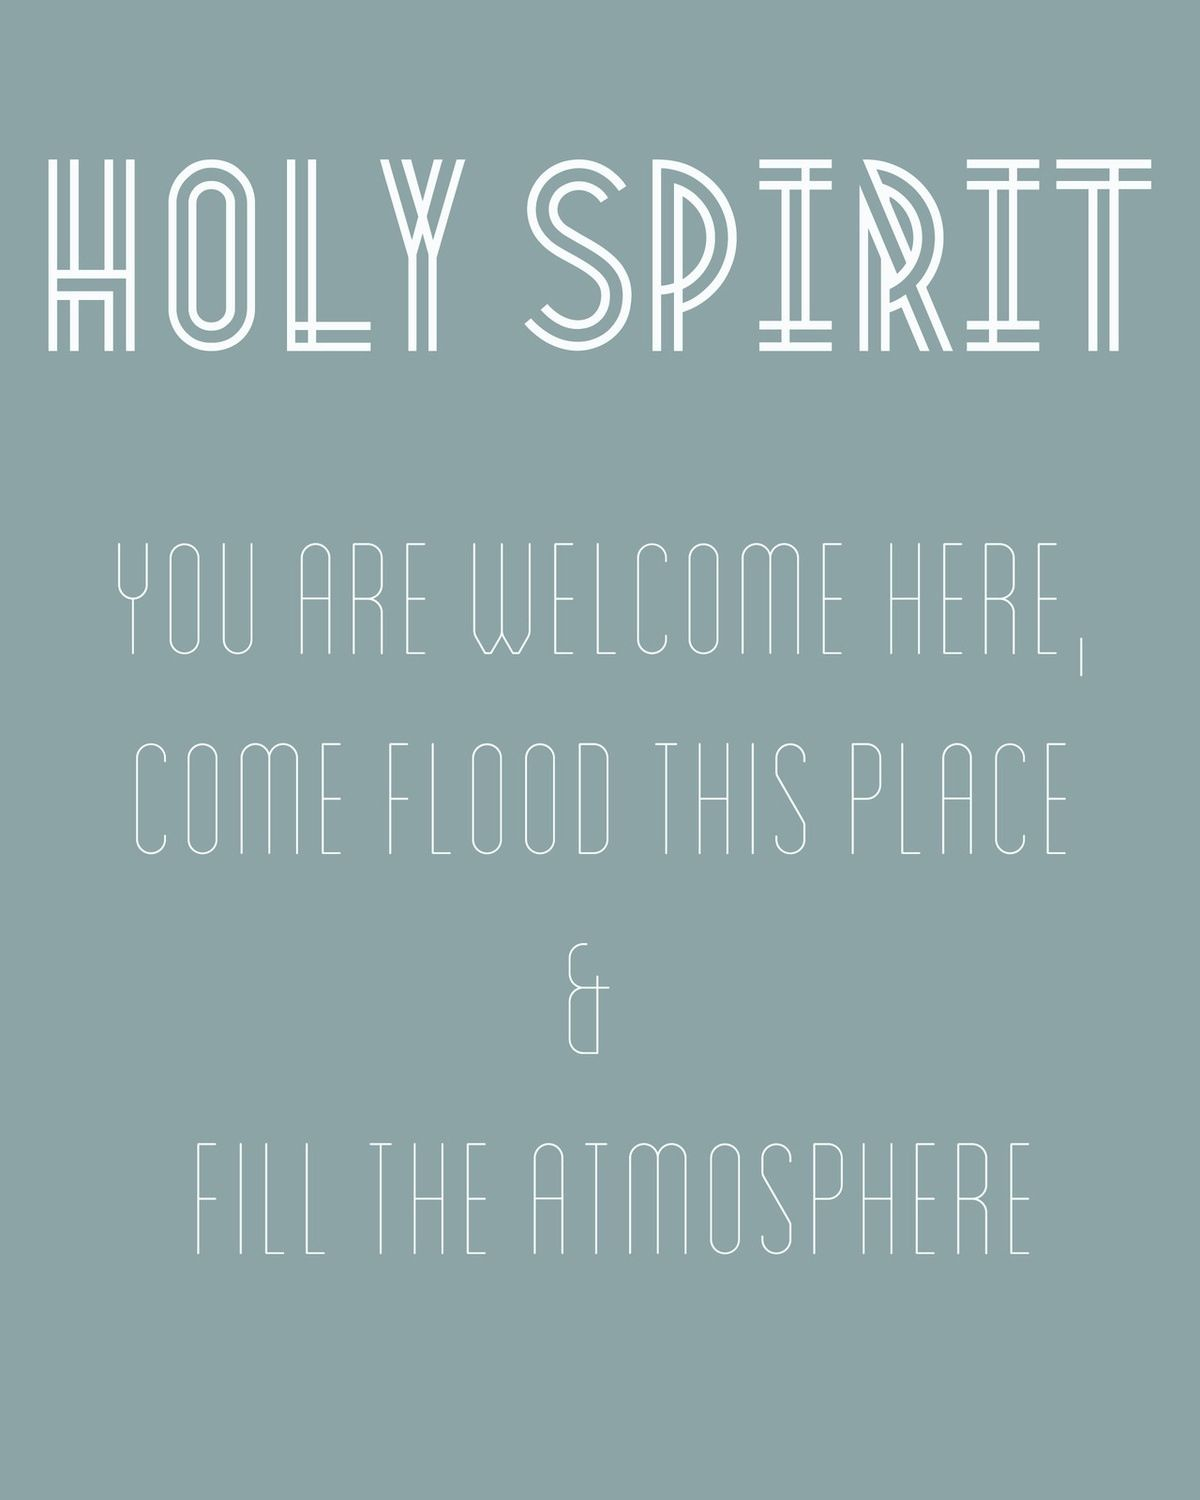 Holy Spirit You are welcome here, come flood this place and fill the atmosphere. ❤